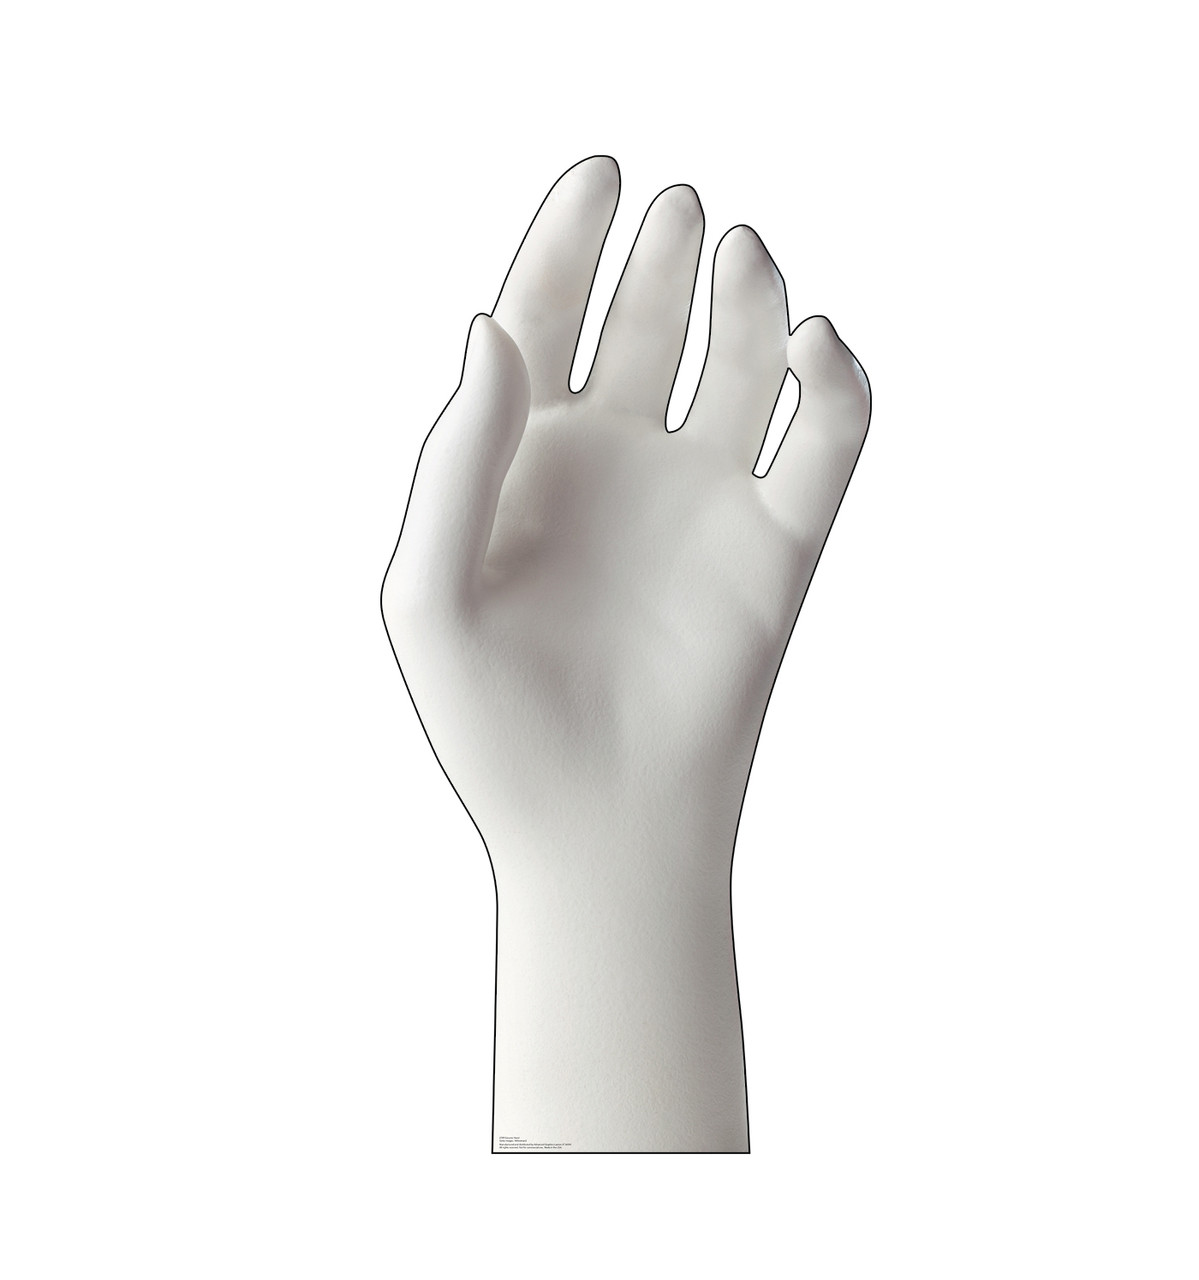 Life-size cardboard standee of a Ceramic Hand.